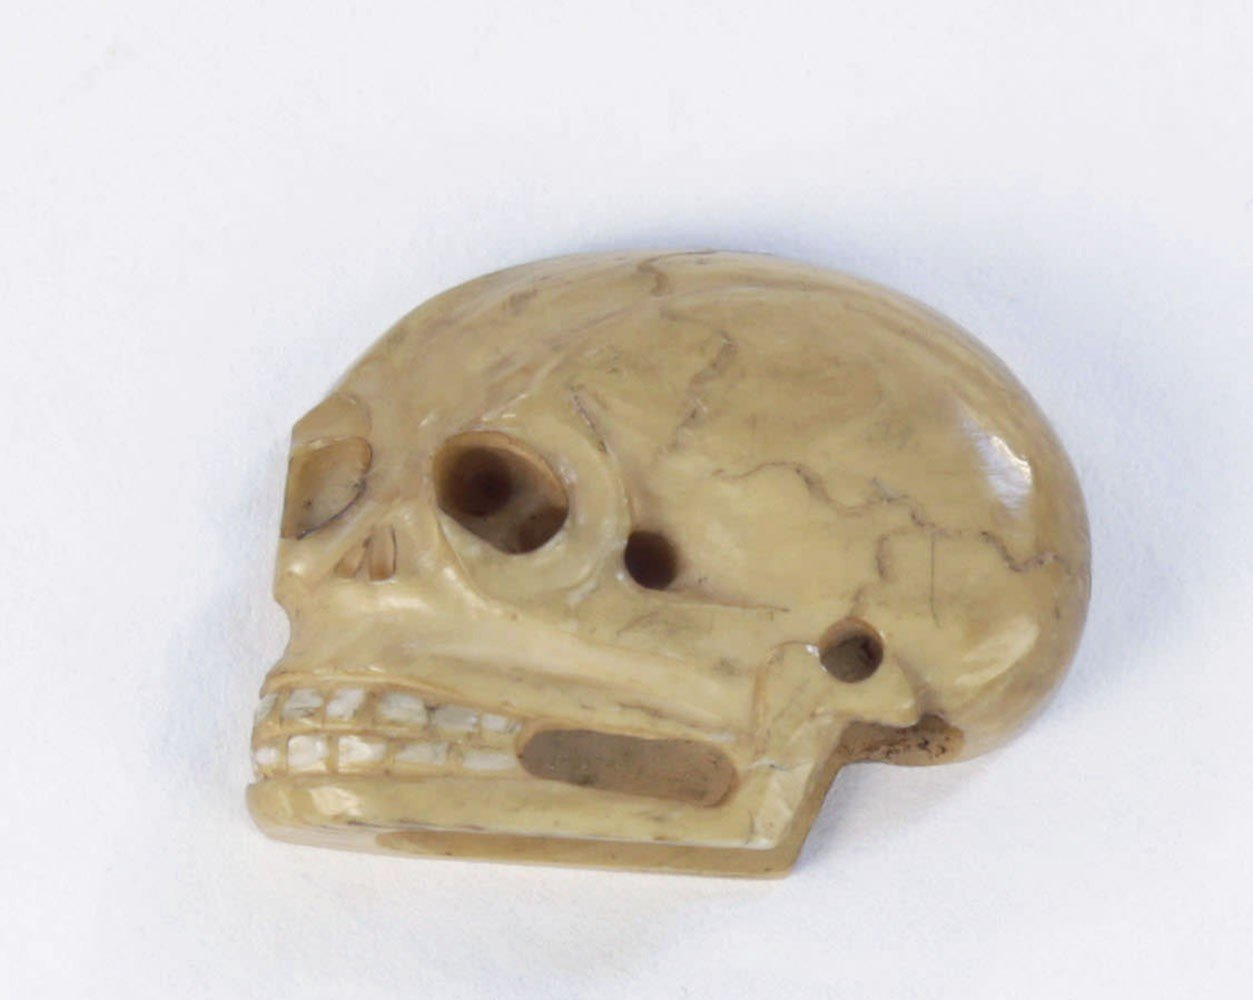 A Japanese Bone or Ivory Button or Netsuke by 19th Century Japanese School